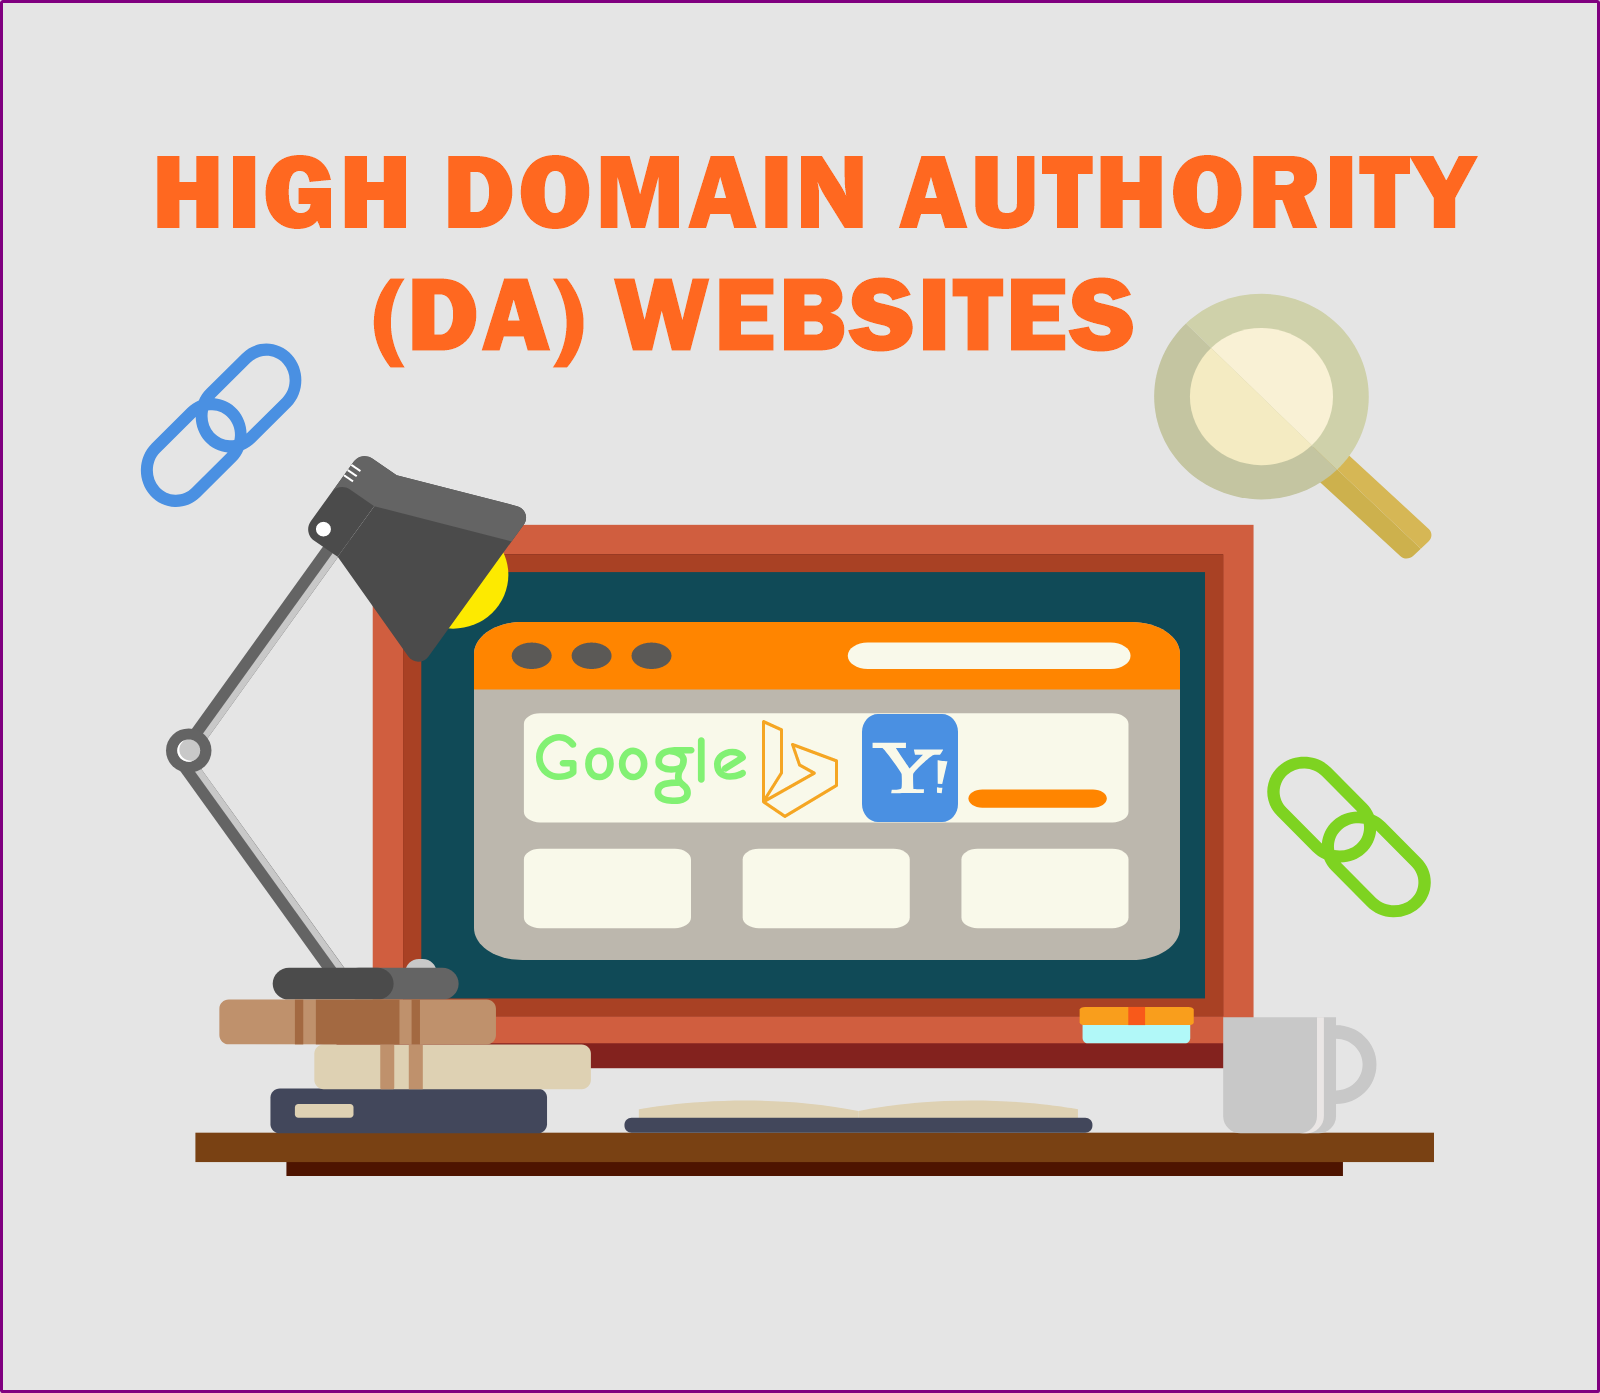 We Will Link 1 Website To Our High Authority Website